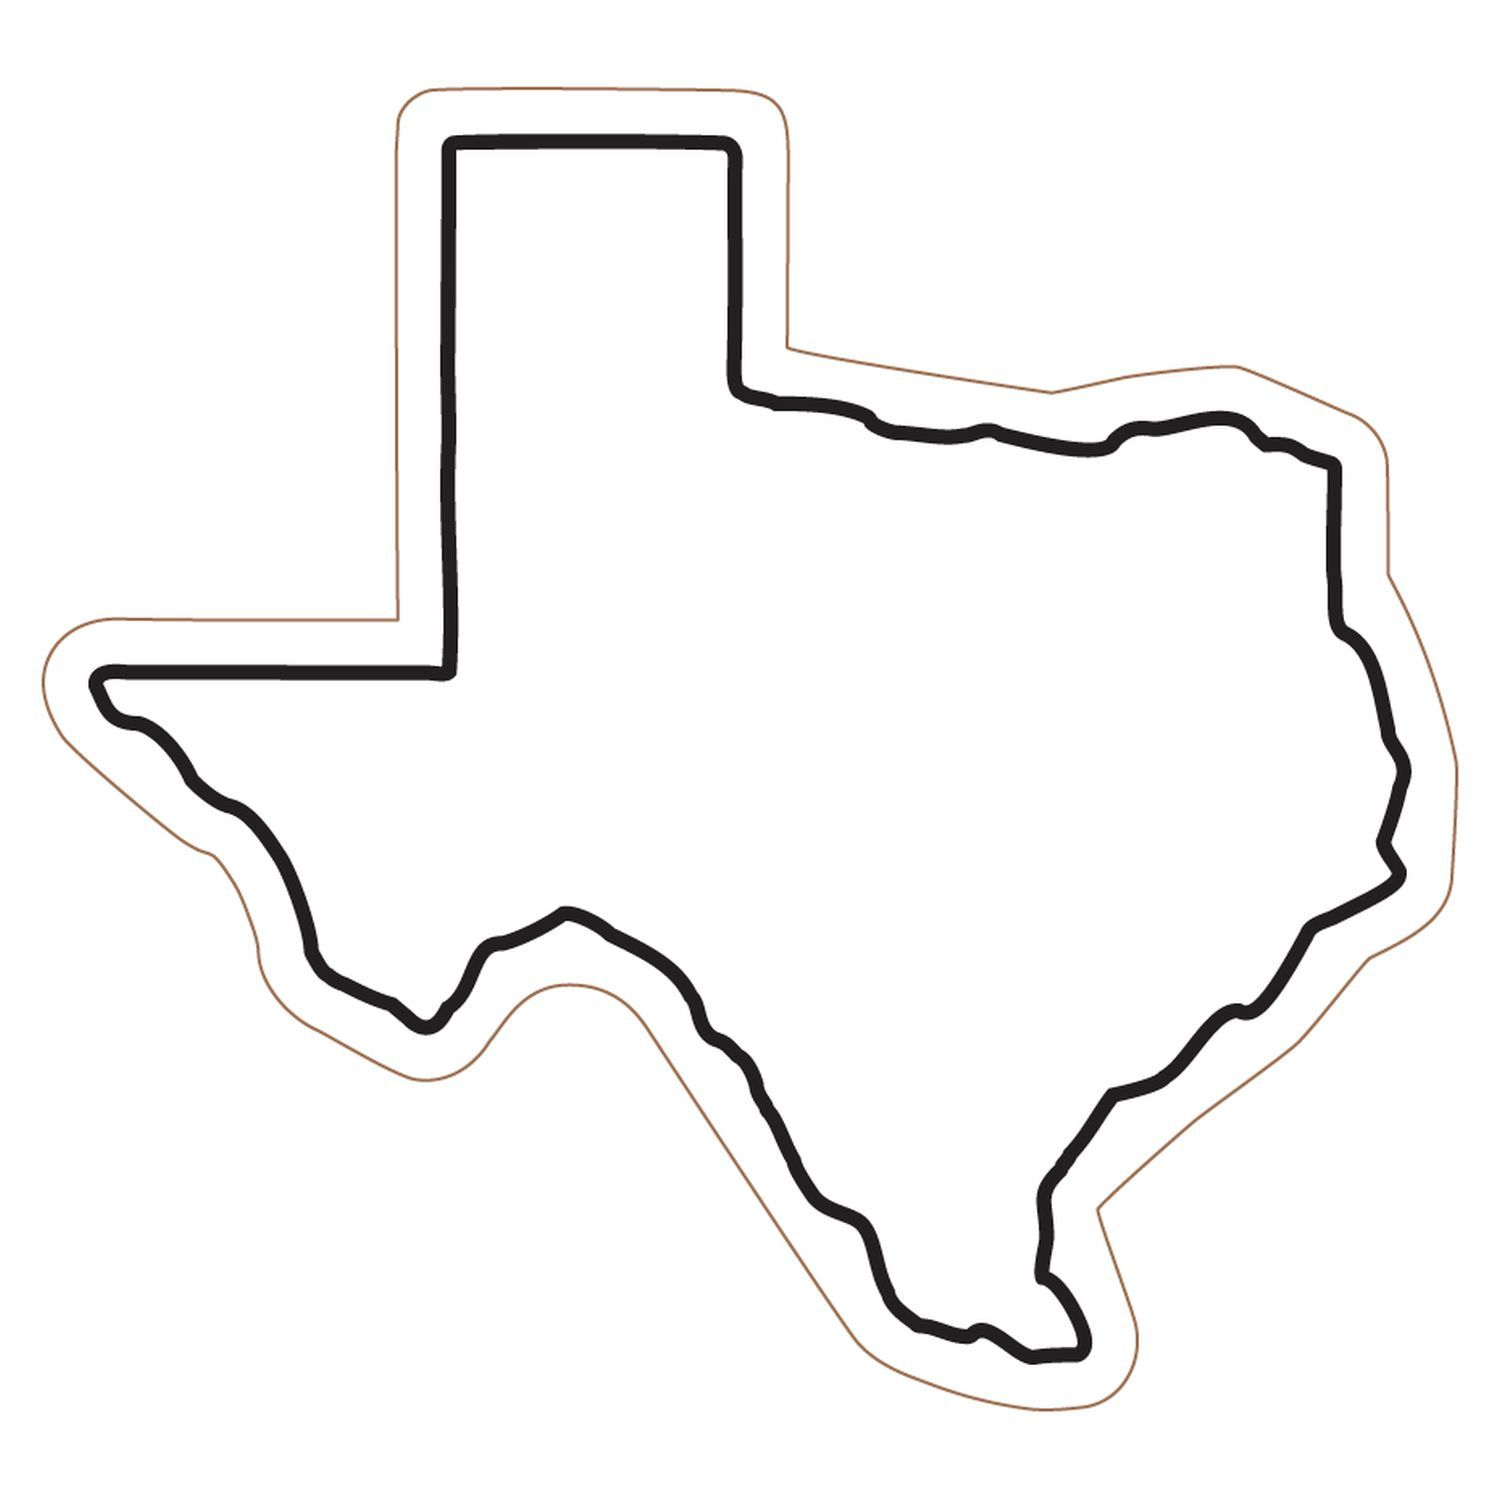 Texas clipart png Texas outline clipart free images 2 - ClipartBarn png